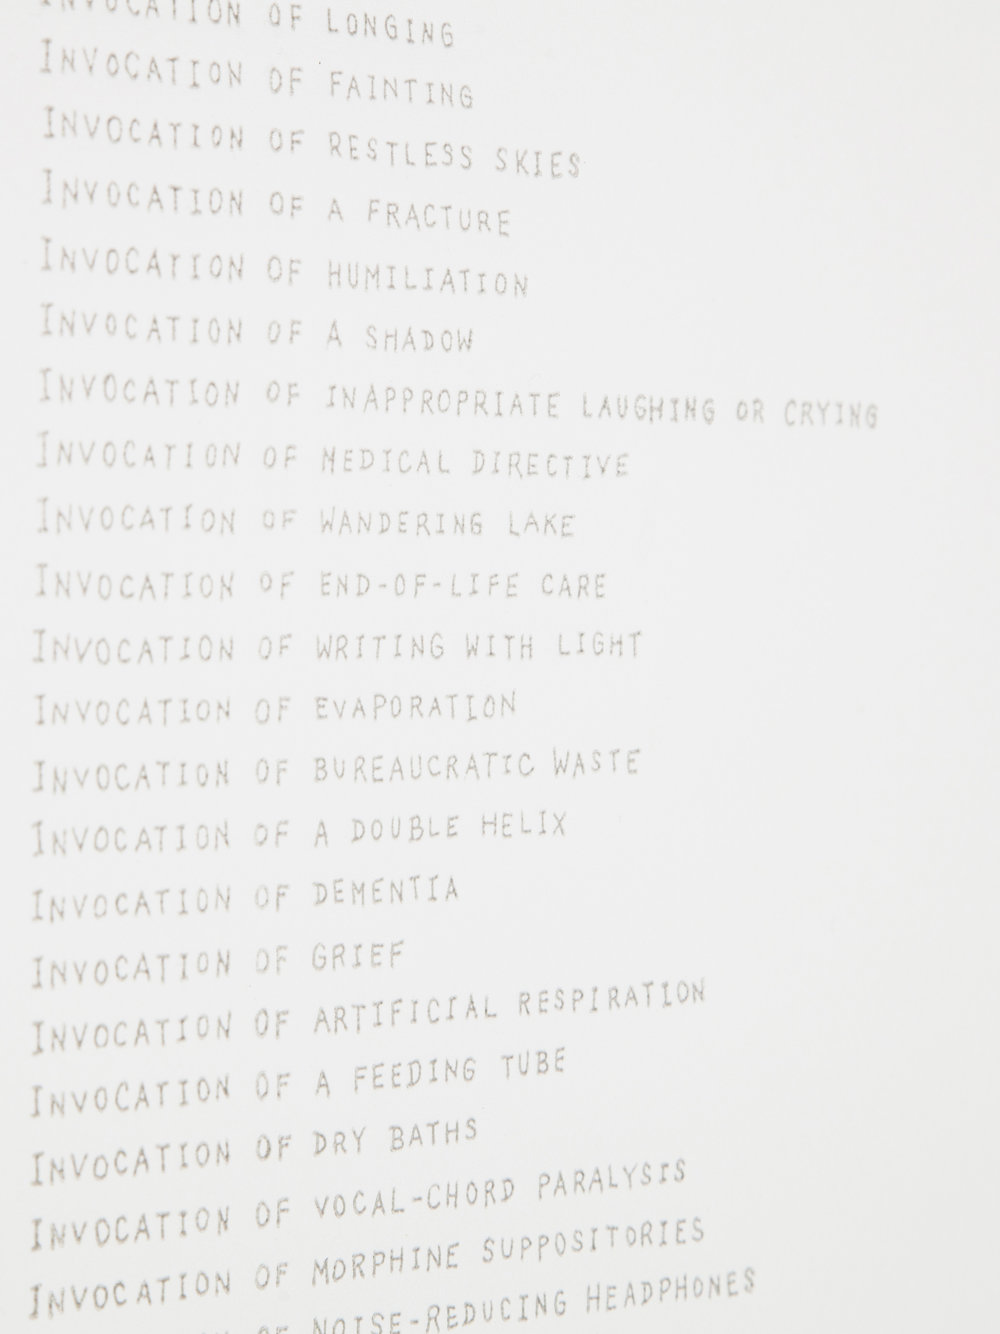 Detail  List of Invocations , 2017 Letterpress Image Size: 17.5 x 12 inches Paper Size: 17.5 x 12 inches Edition of 50